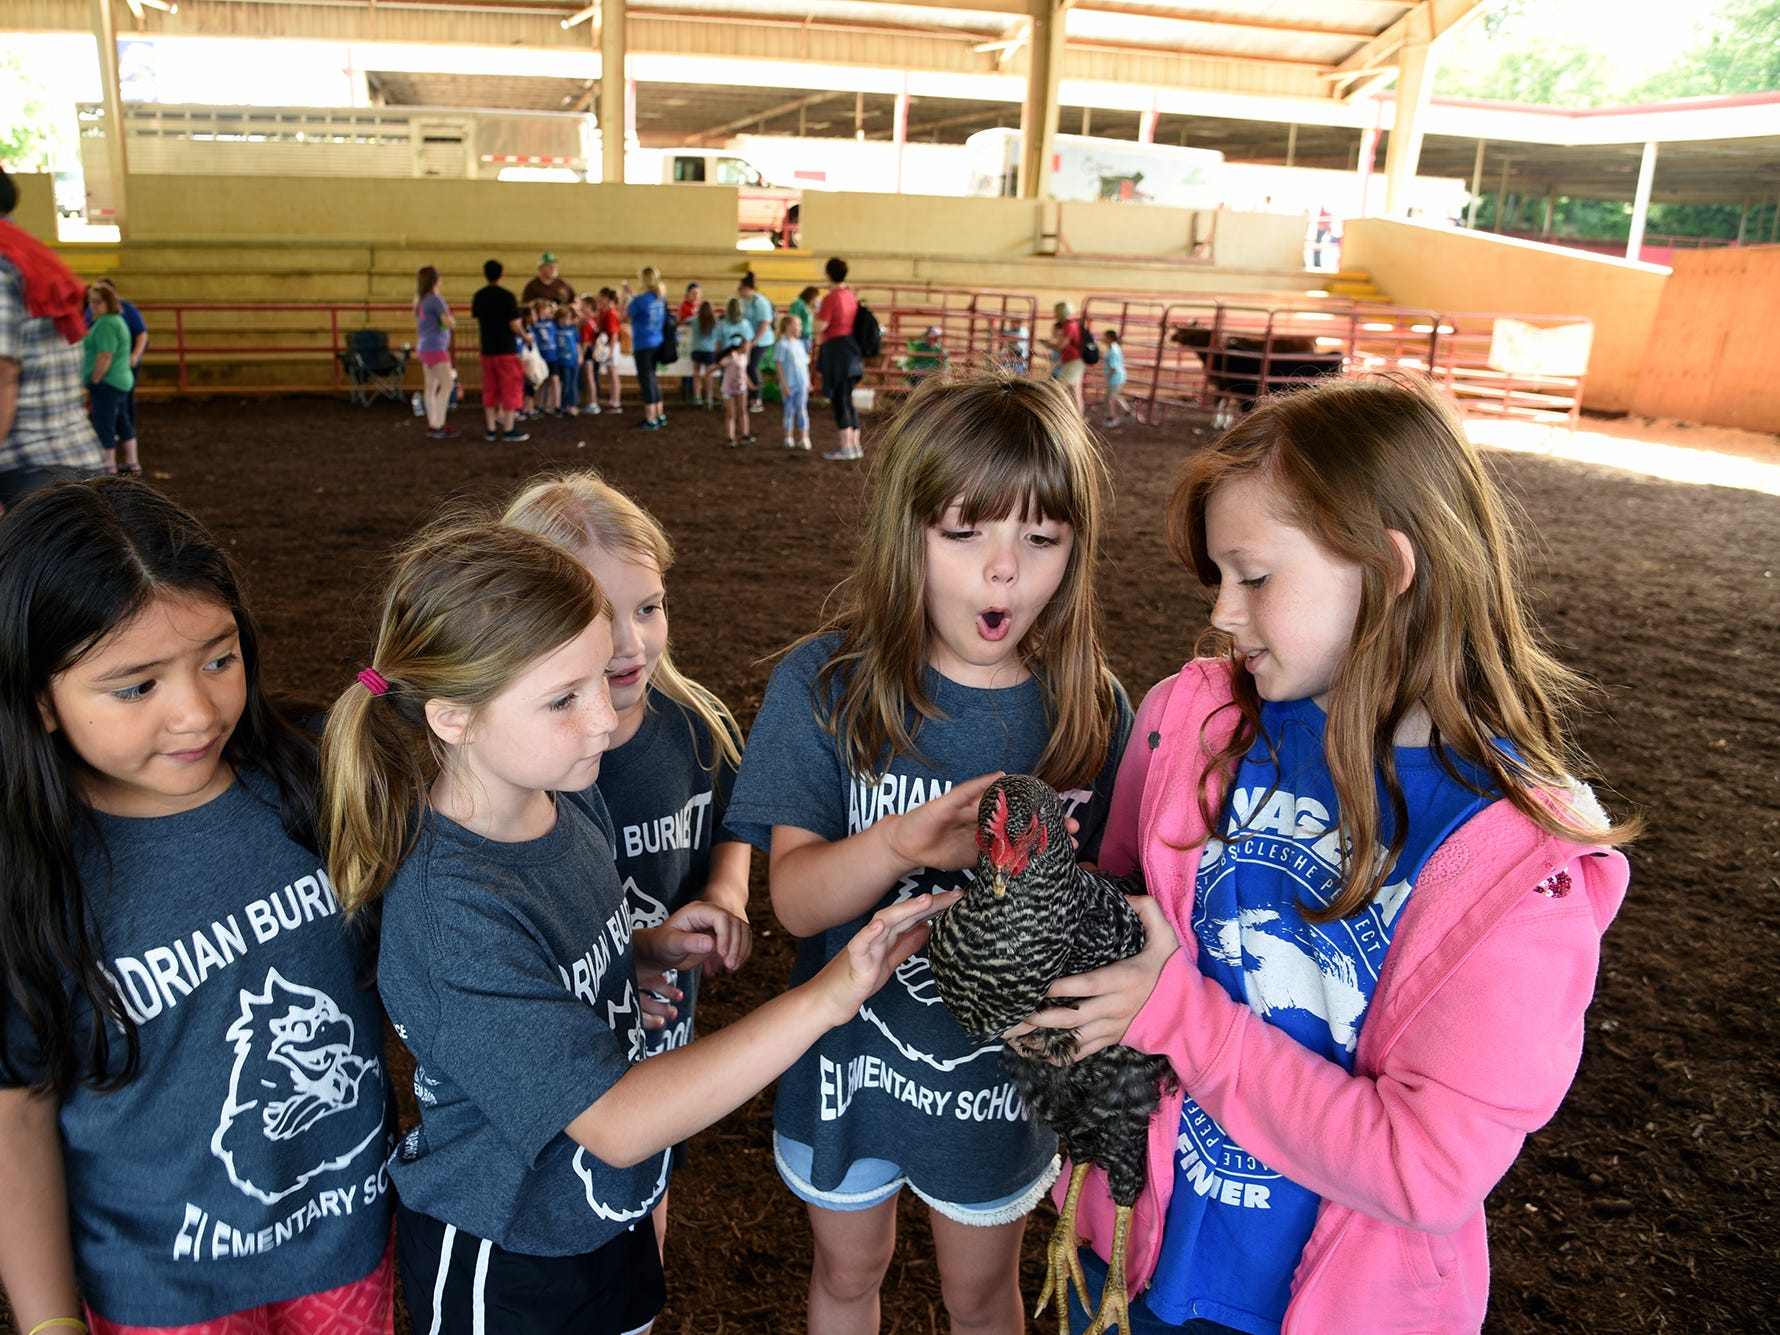 Allison Keeler, right,  holds a Barred Rock chicken for Adrian Burnett students to pet. Over 600 Knox County School children attended the annual Knox County Farm Bureau Ag in the Classroom Farm Day at Chilhowee Park Tuesday May 7, 2019.